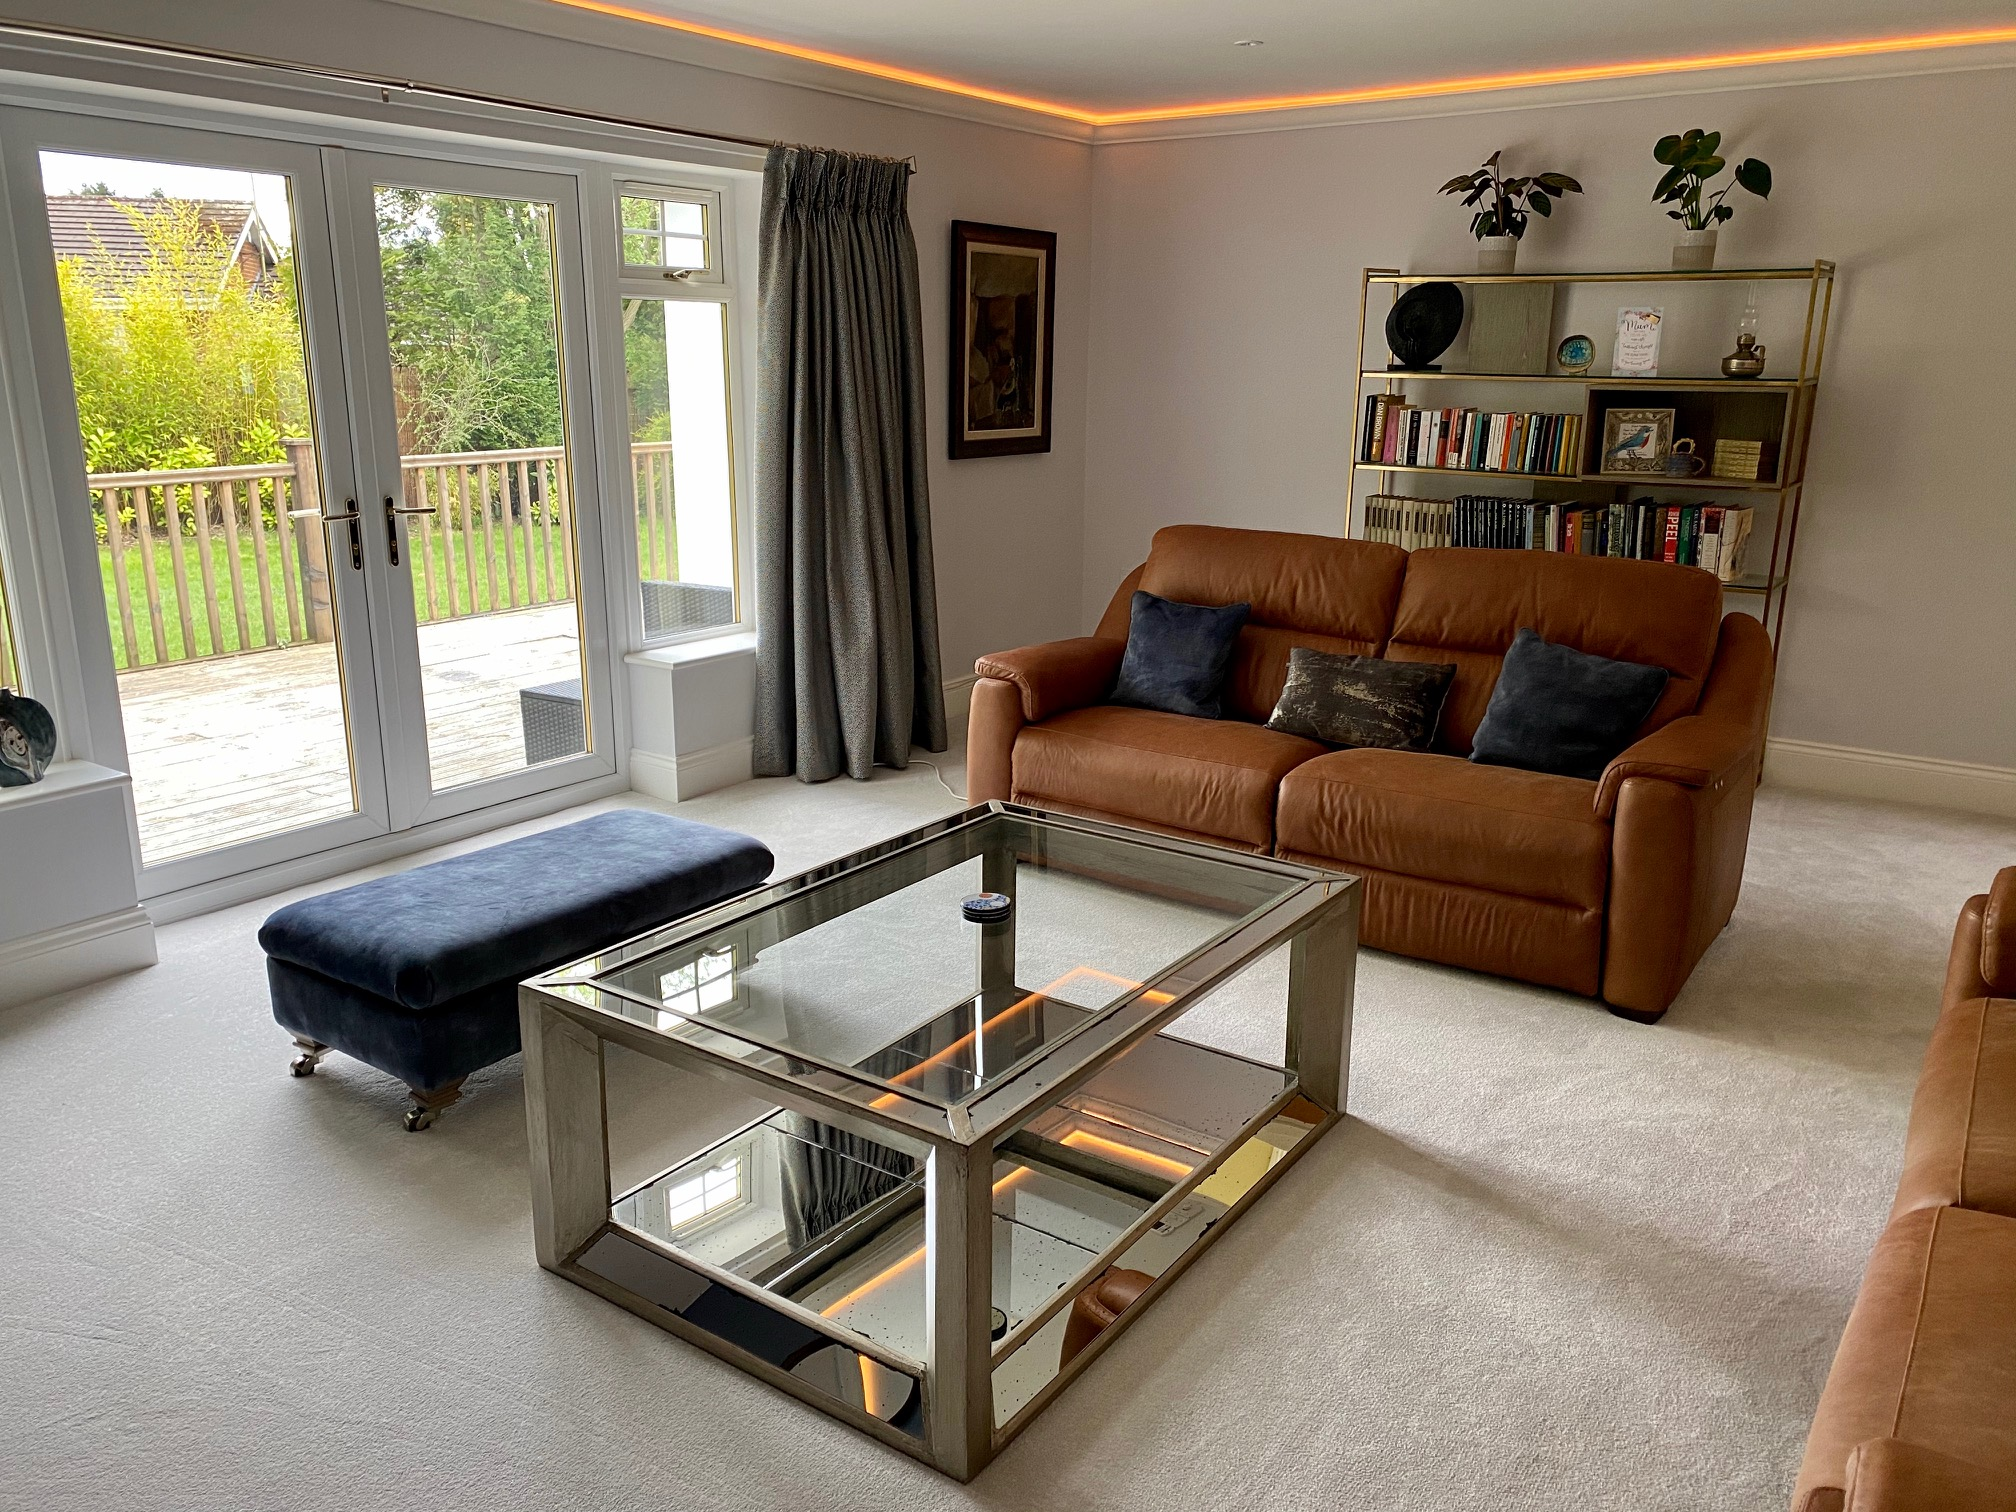 A stunning coffee table and storage for books